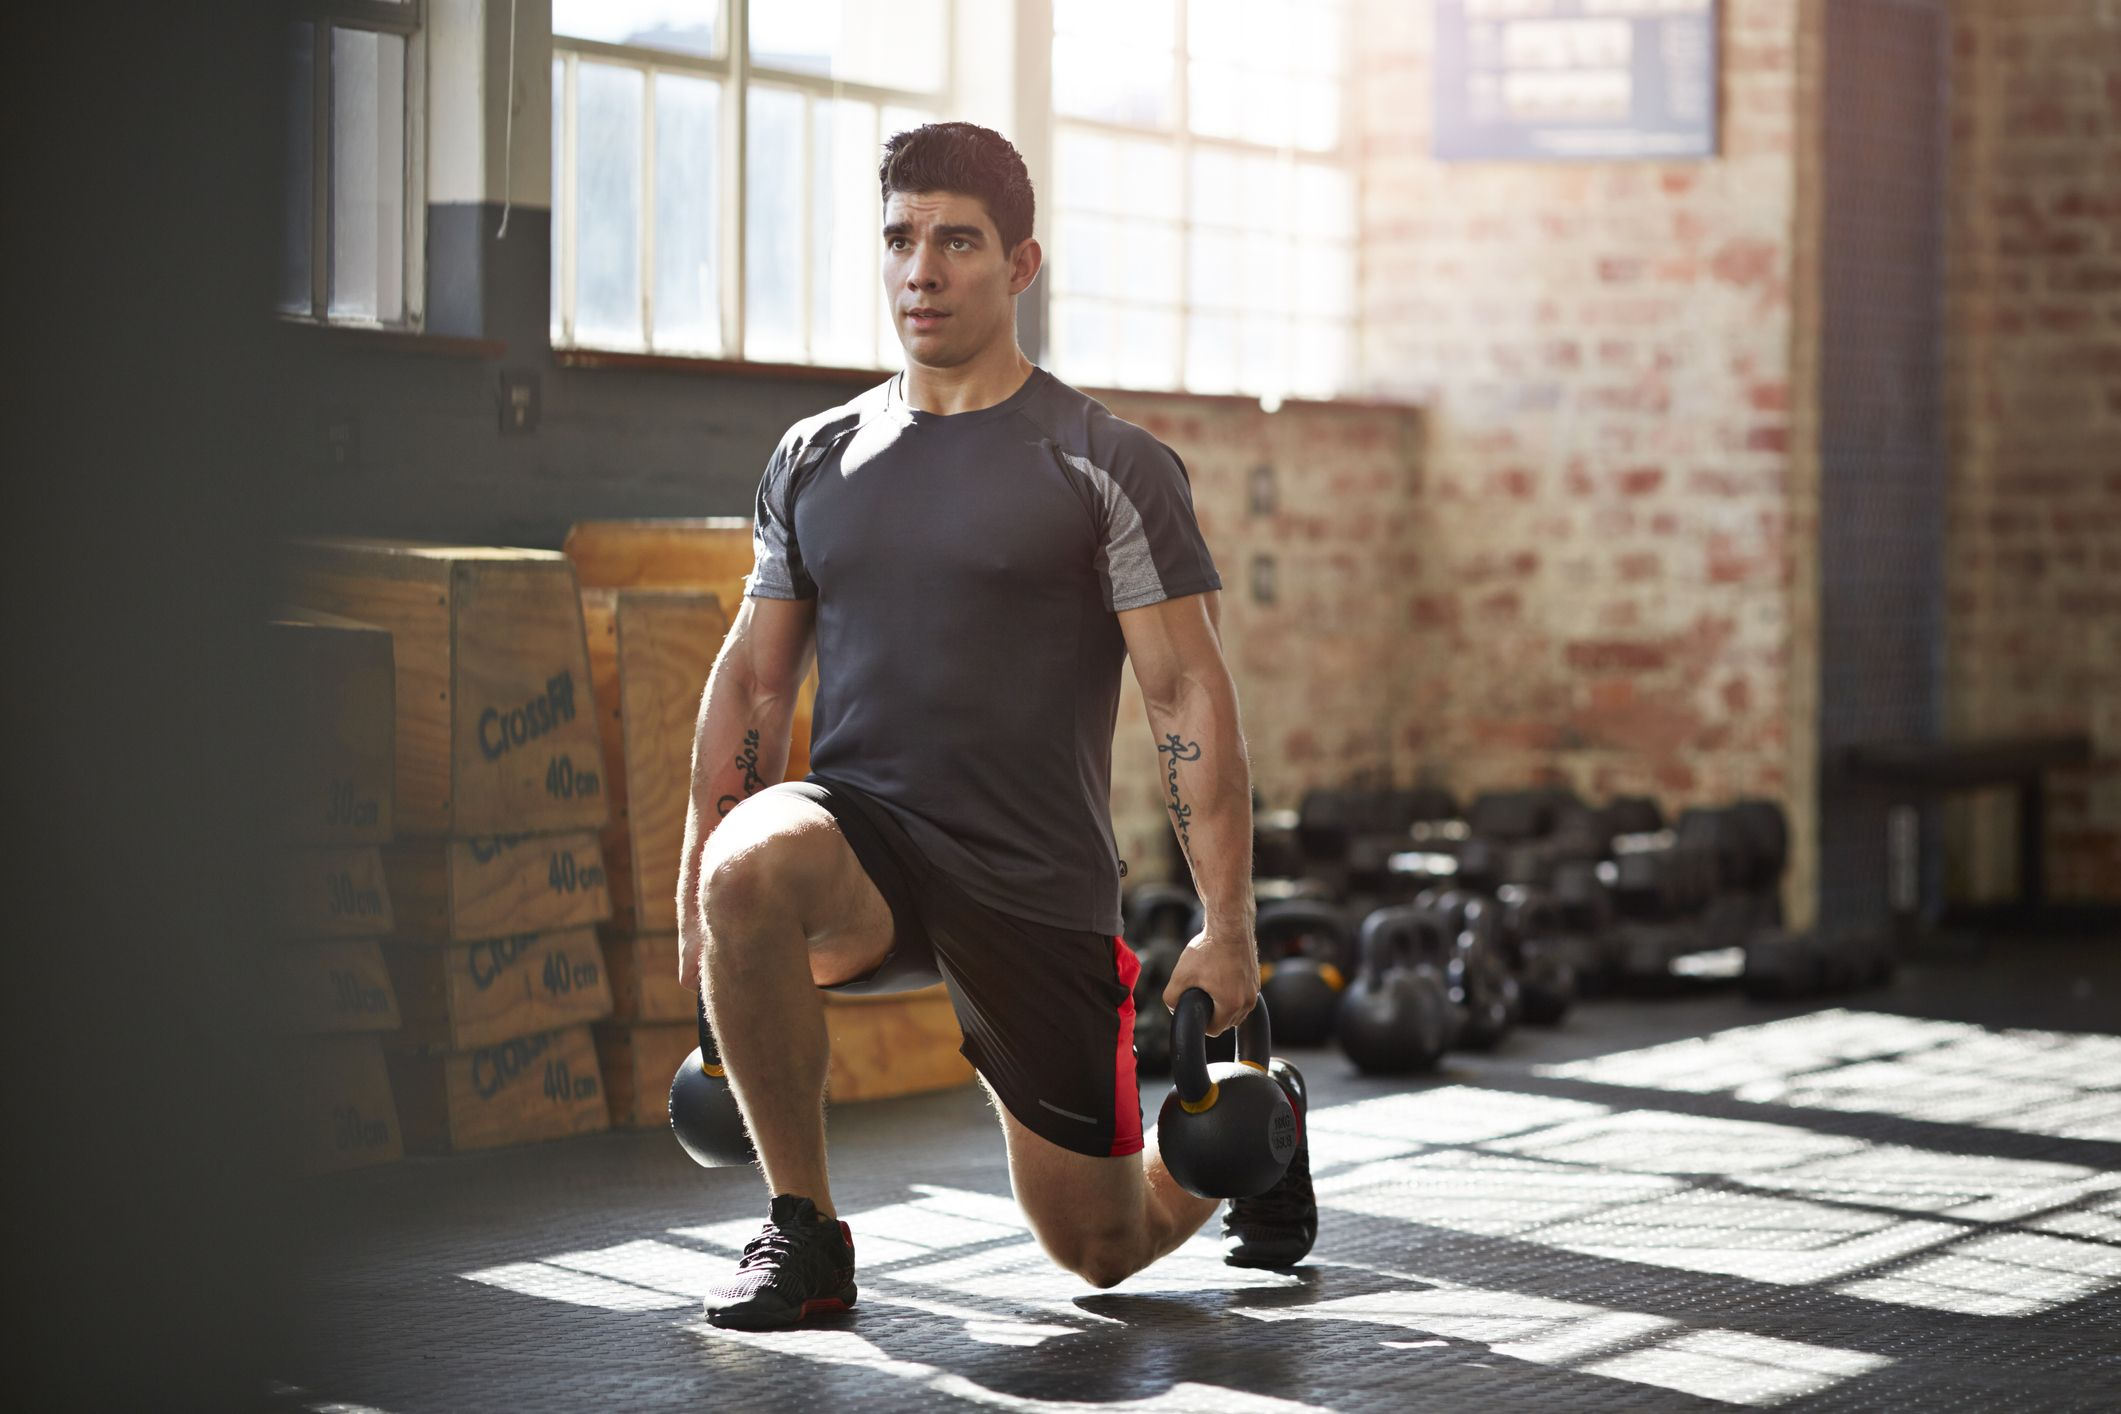 Build Bigger Legs And Tougher Abs At Home With This Superset Workout